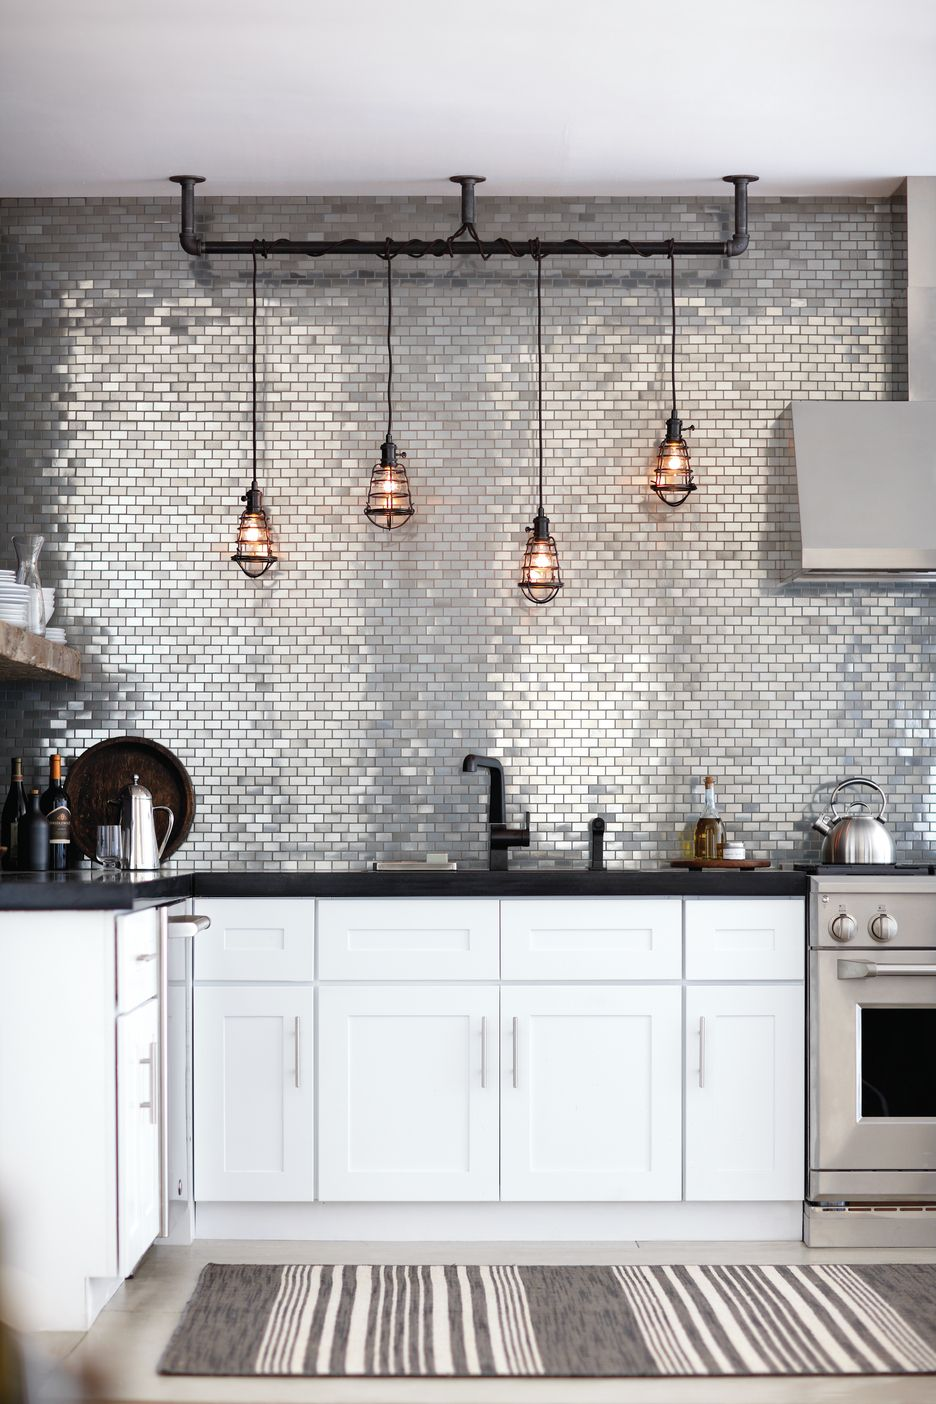 Upgrade Your Kitchen With These Amazing Backsplash Ideas | Cocinas ...